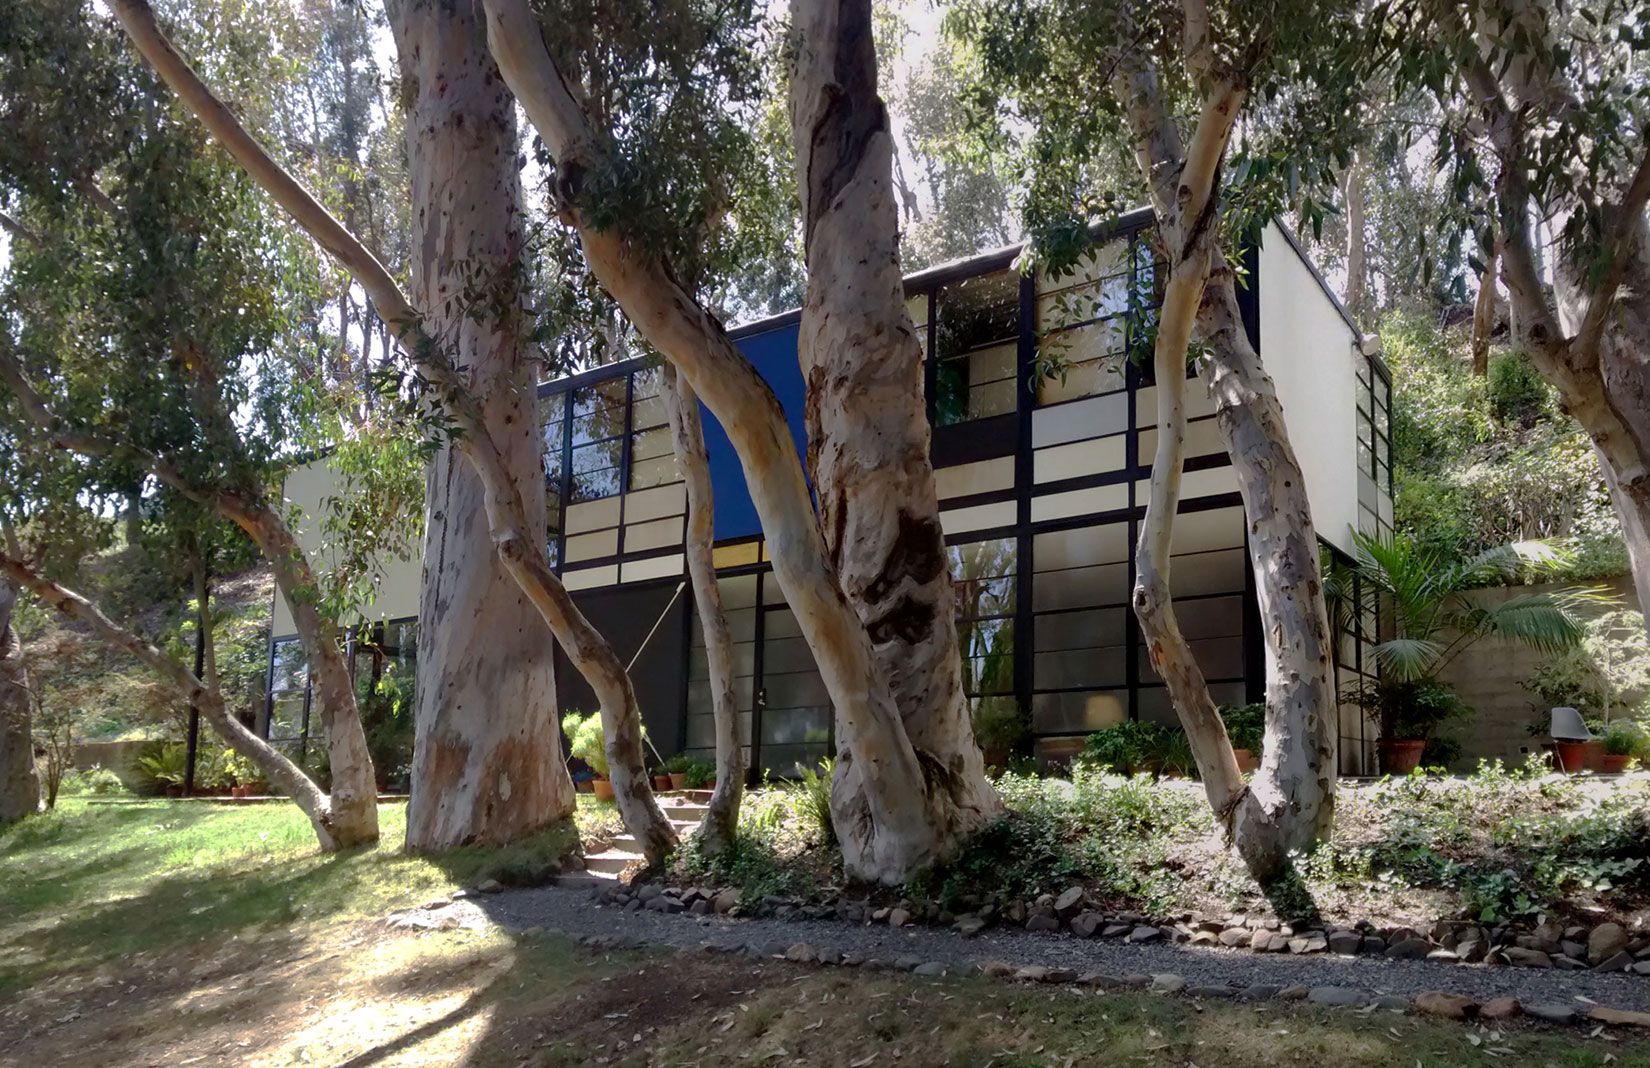 Architects' homes you can visit, including the Eames House